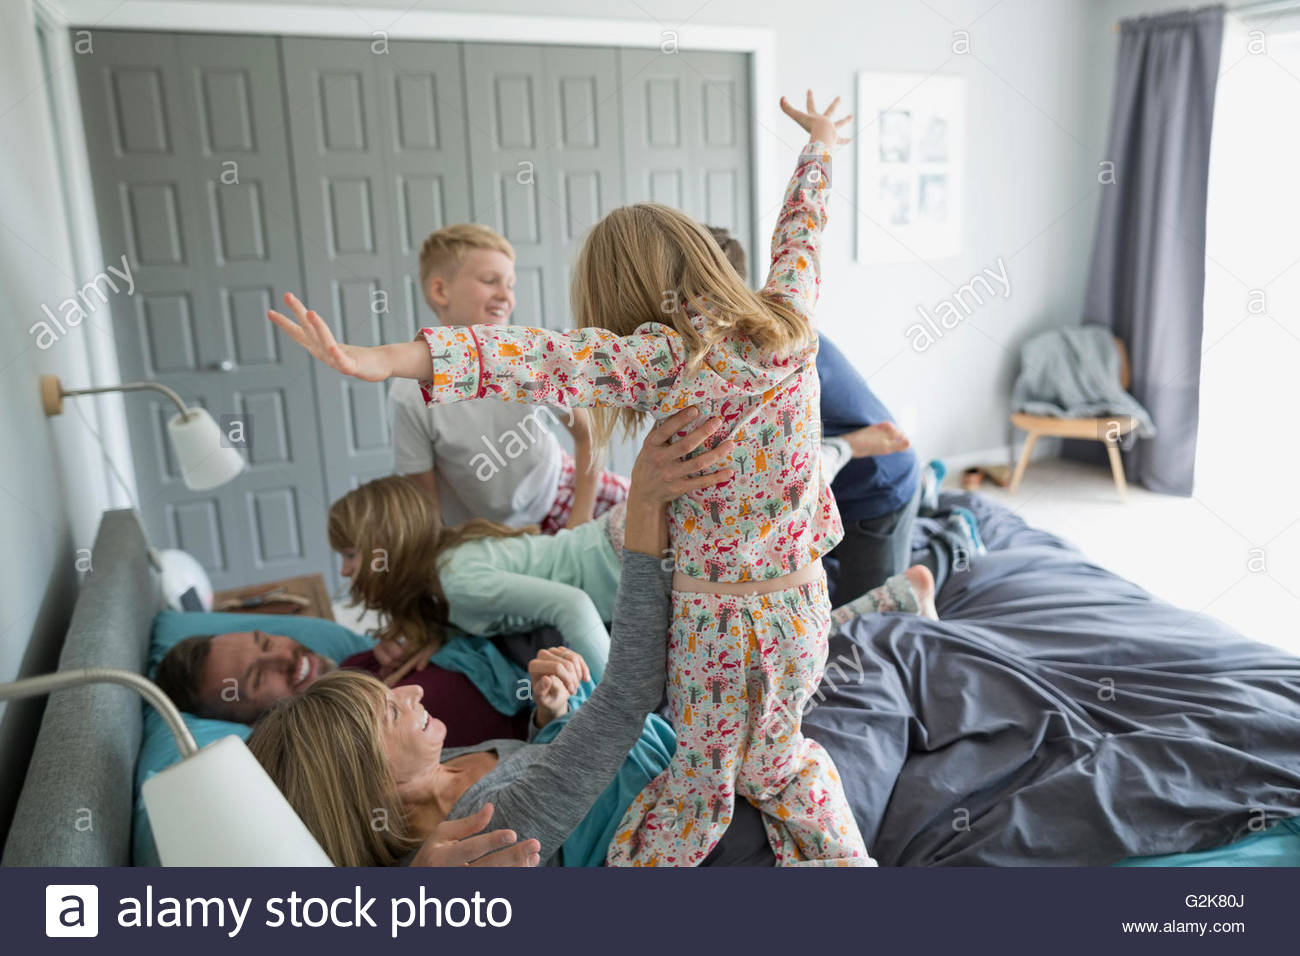 Playful children in pajamas jumping on parents in bed - Stock Image